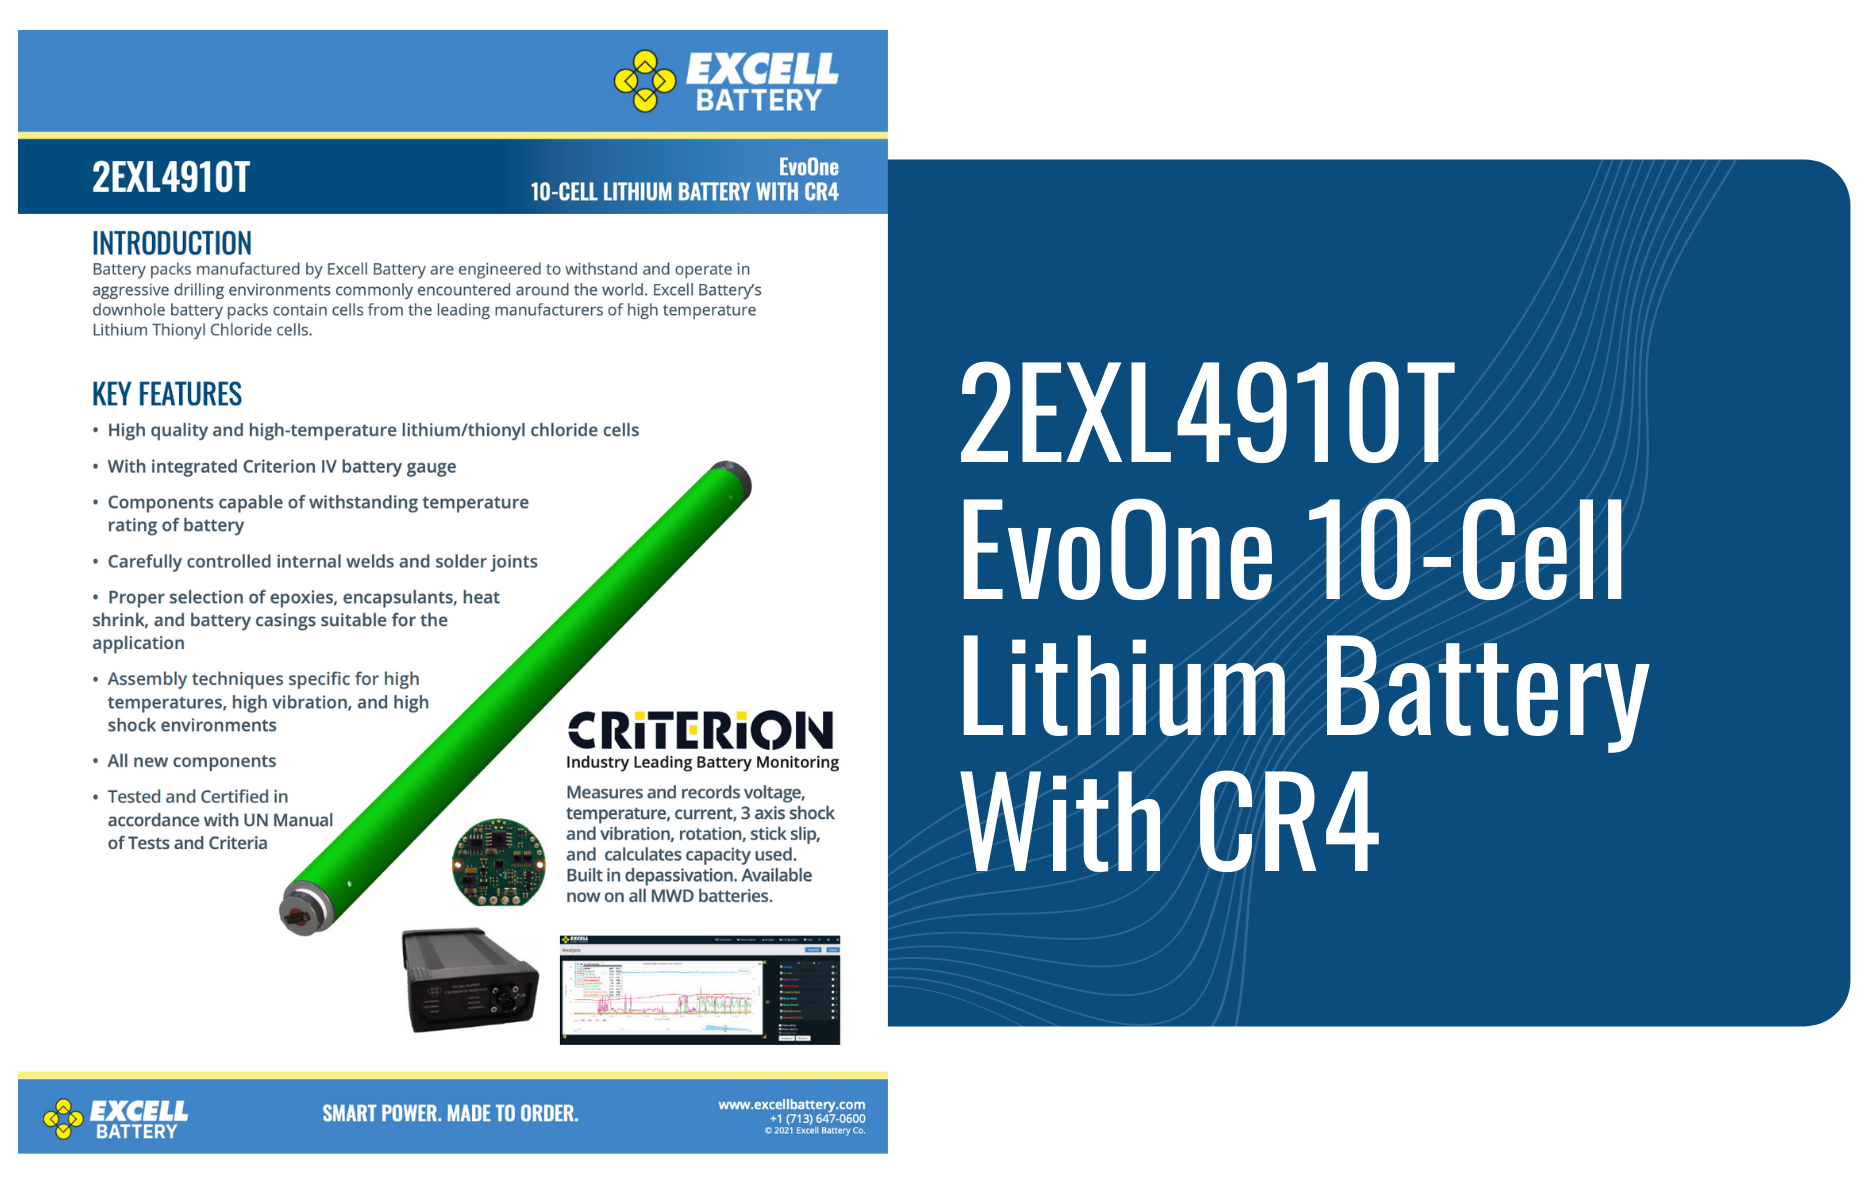 2EXL4910T EvoOne 10-Cell Lithium Battery With CR4-1